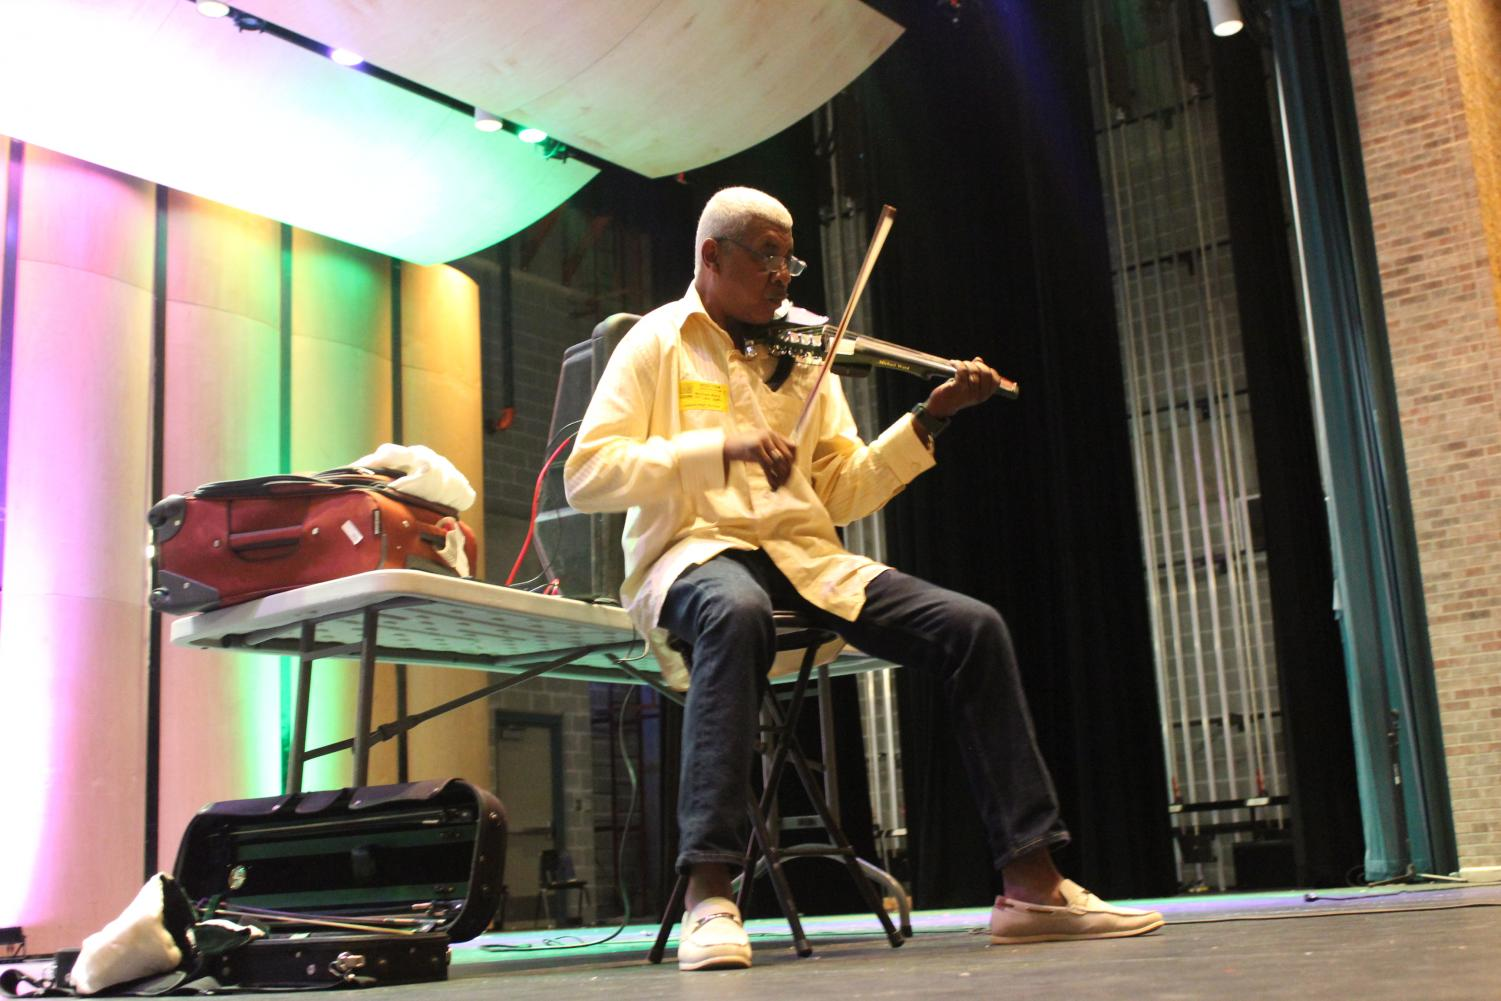 World-renowned musician Michael Ward plays his violin in front of band and orchestra members in the Performing Arts Center. Ward has traveled all over the world playing concerts for high profile people.